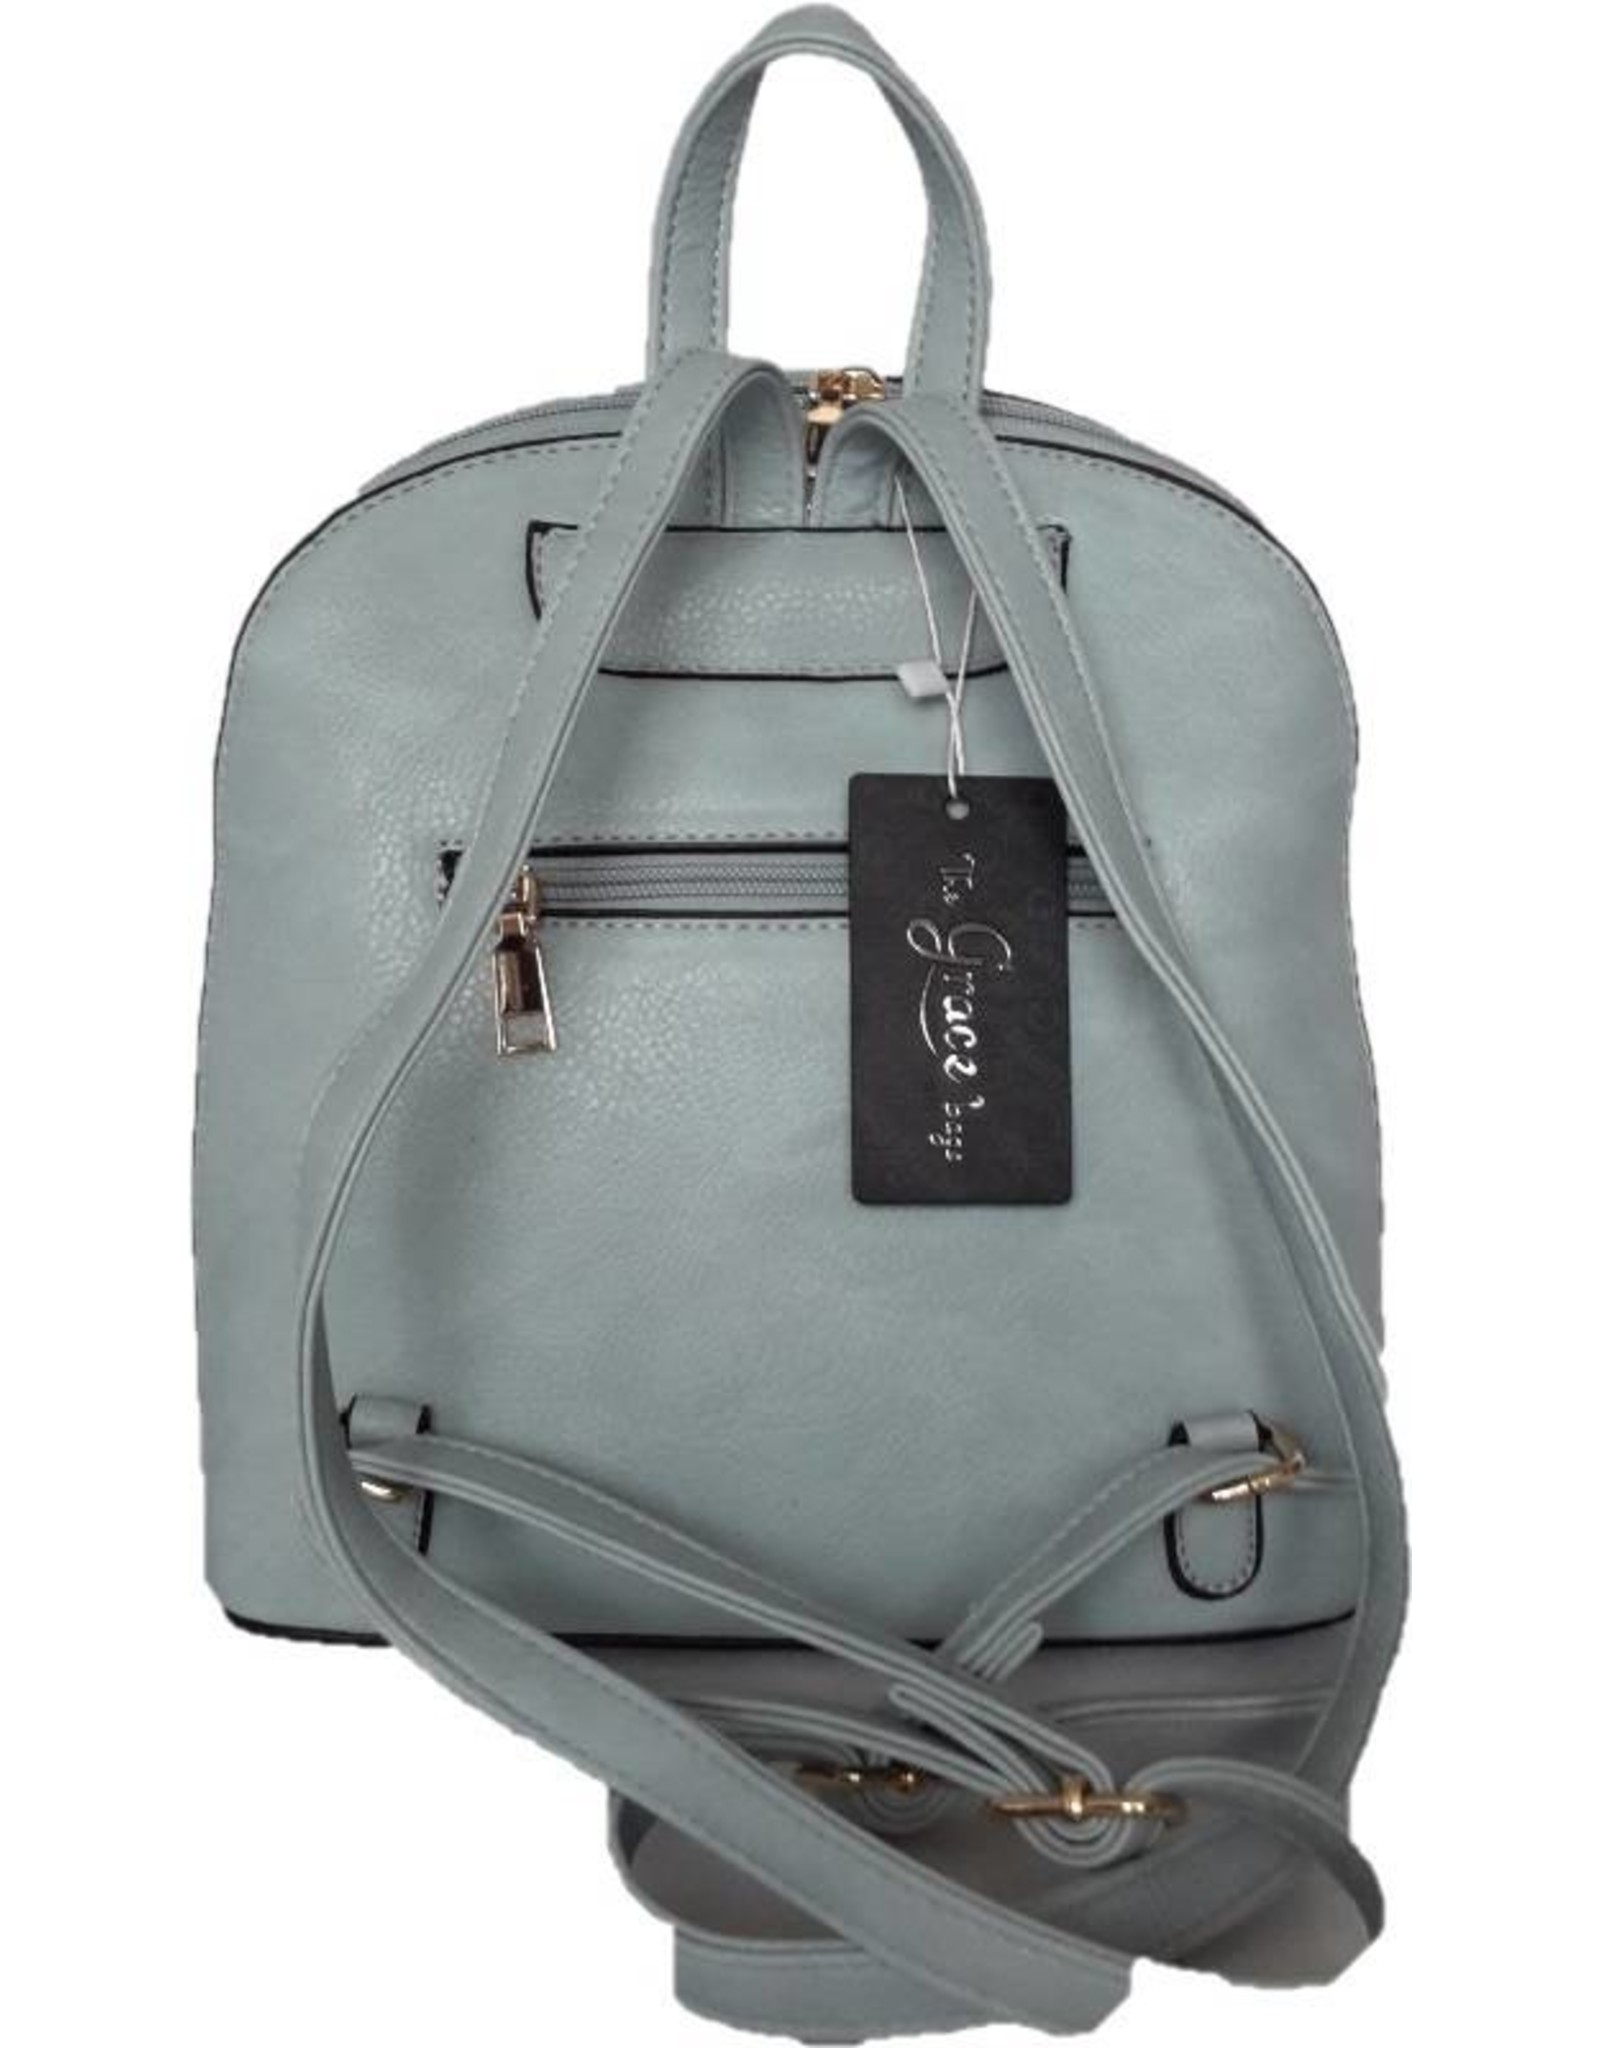 Trukado Backpacks and fanny packs - Fashion backpack with holographic accents pink